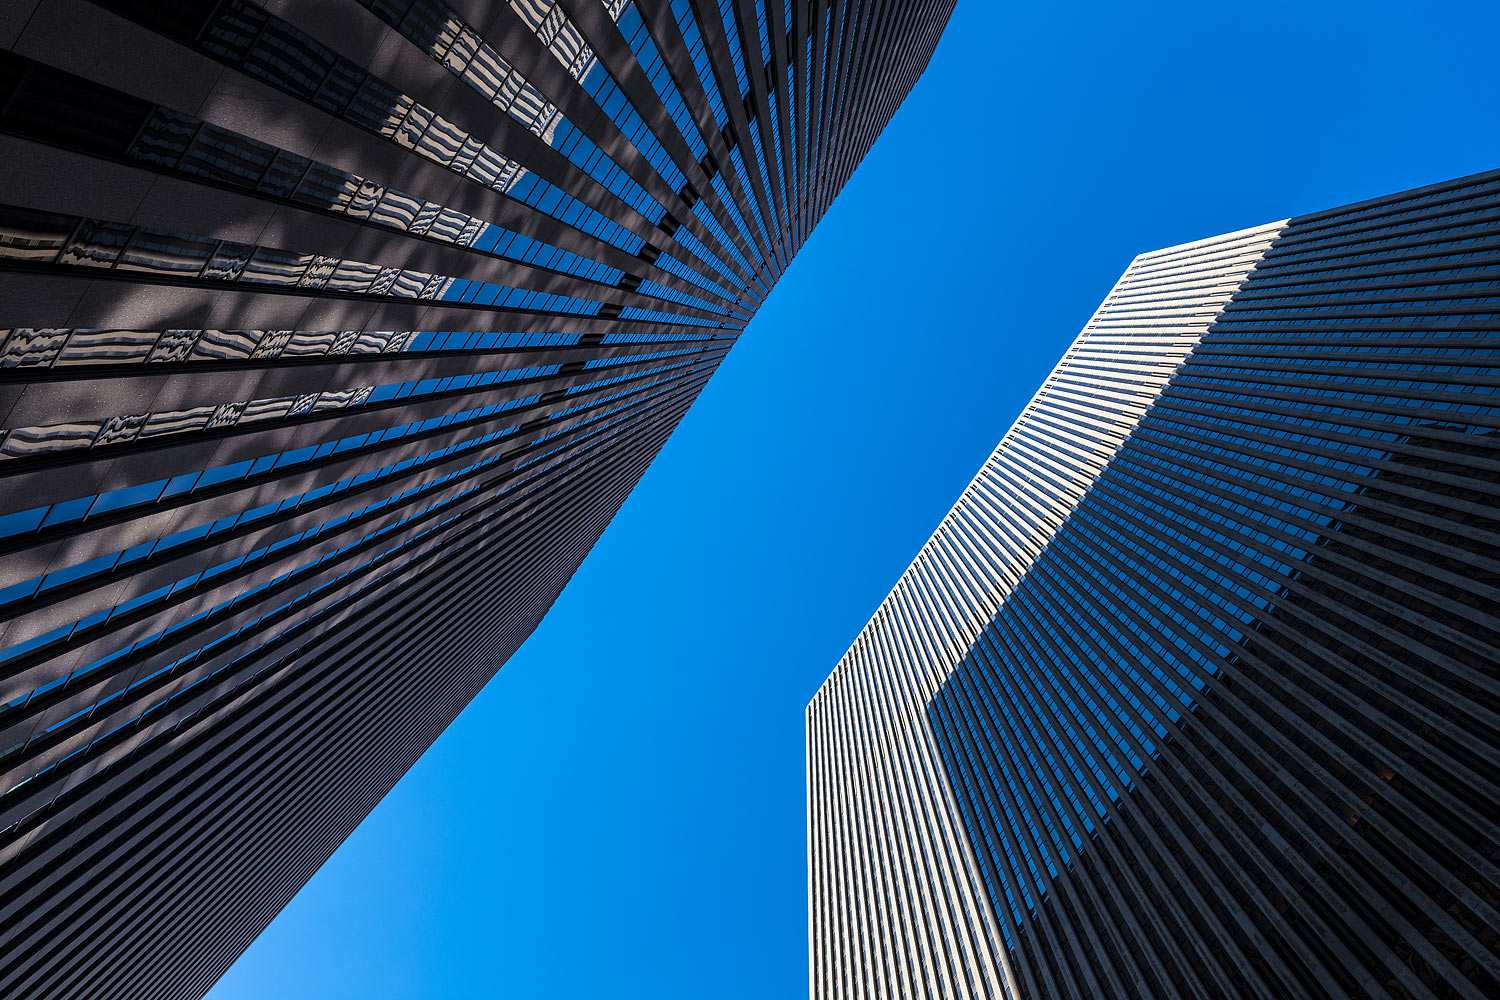 Upward view of two skyscrapers in New York City. One skyscraper casts a shadow onto the other one.